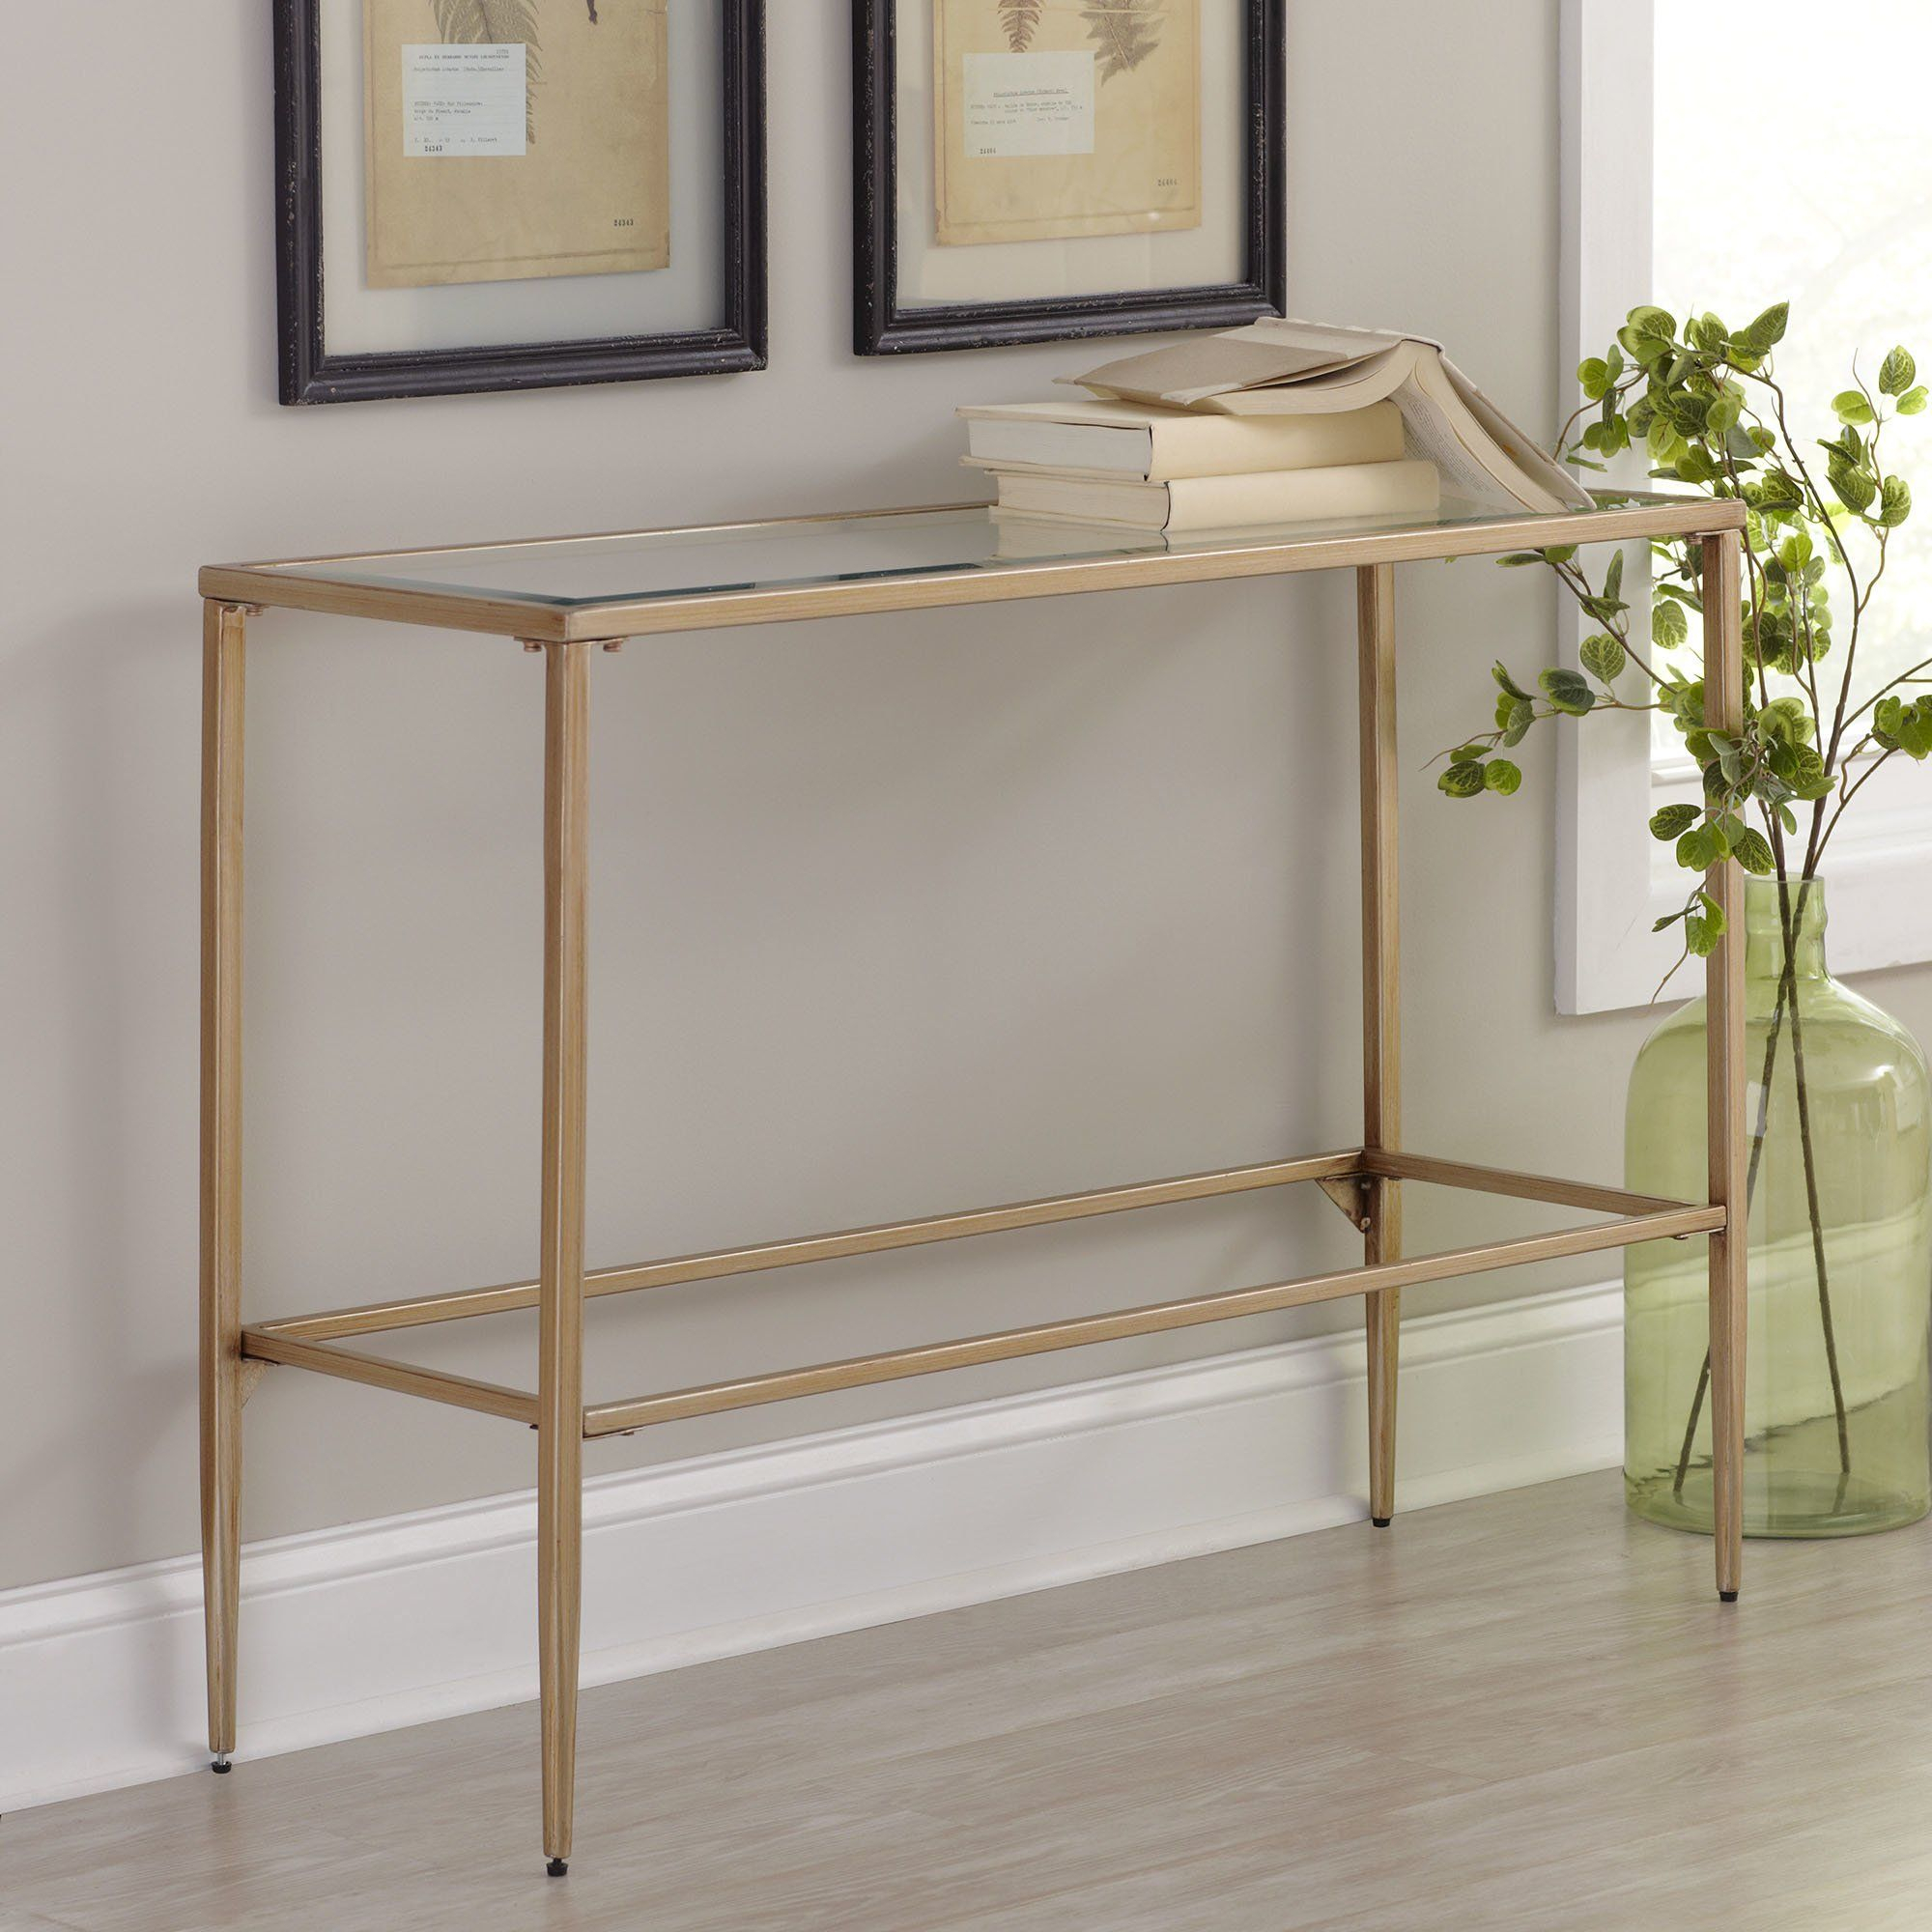 Nash Console Table | N E W H O U S E | Pinterest | Console Tables Regarding Elke Glass Console Tables With Brass Base (View 15 of 30)